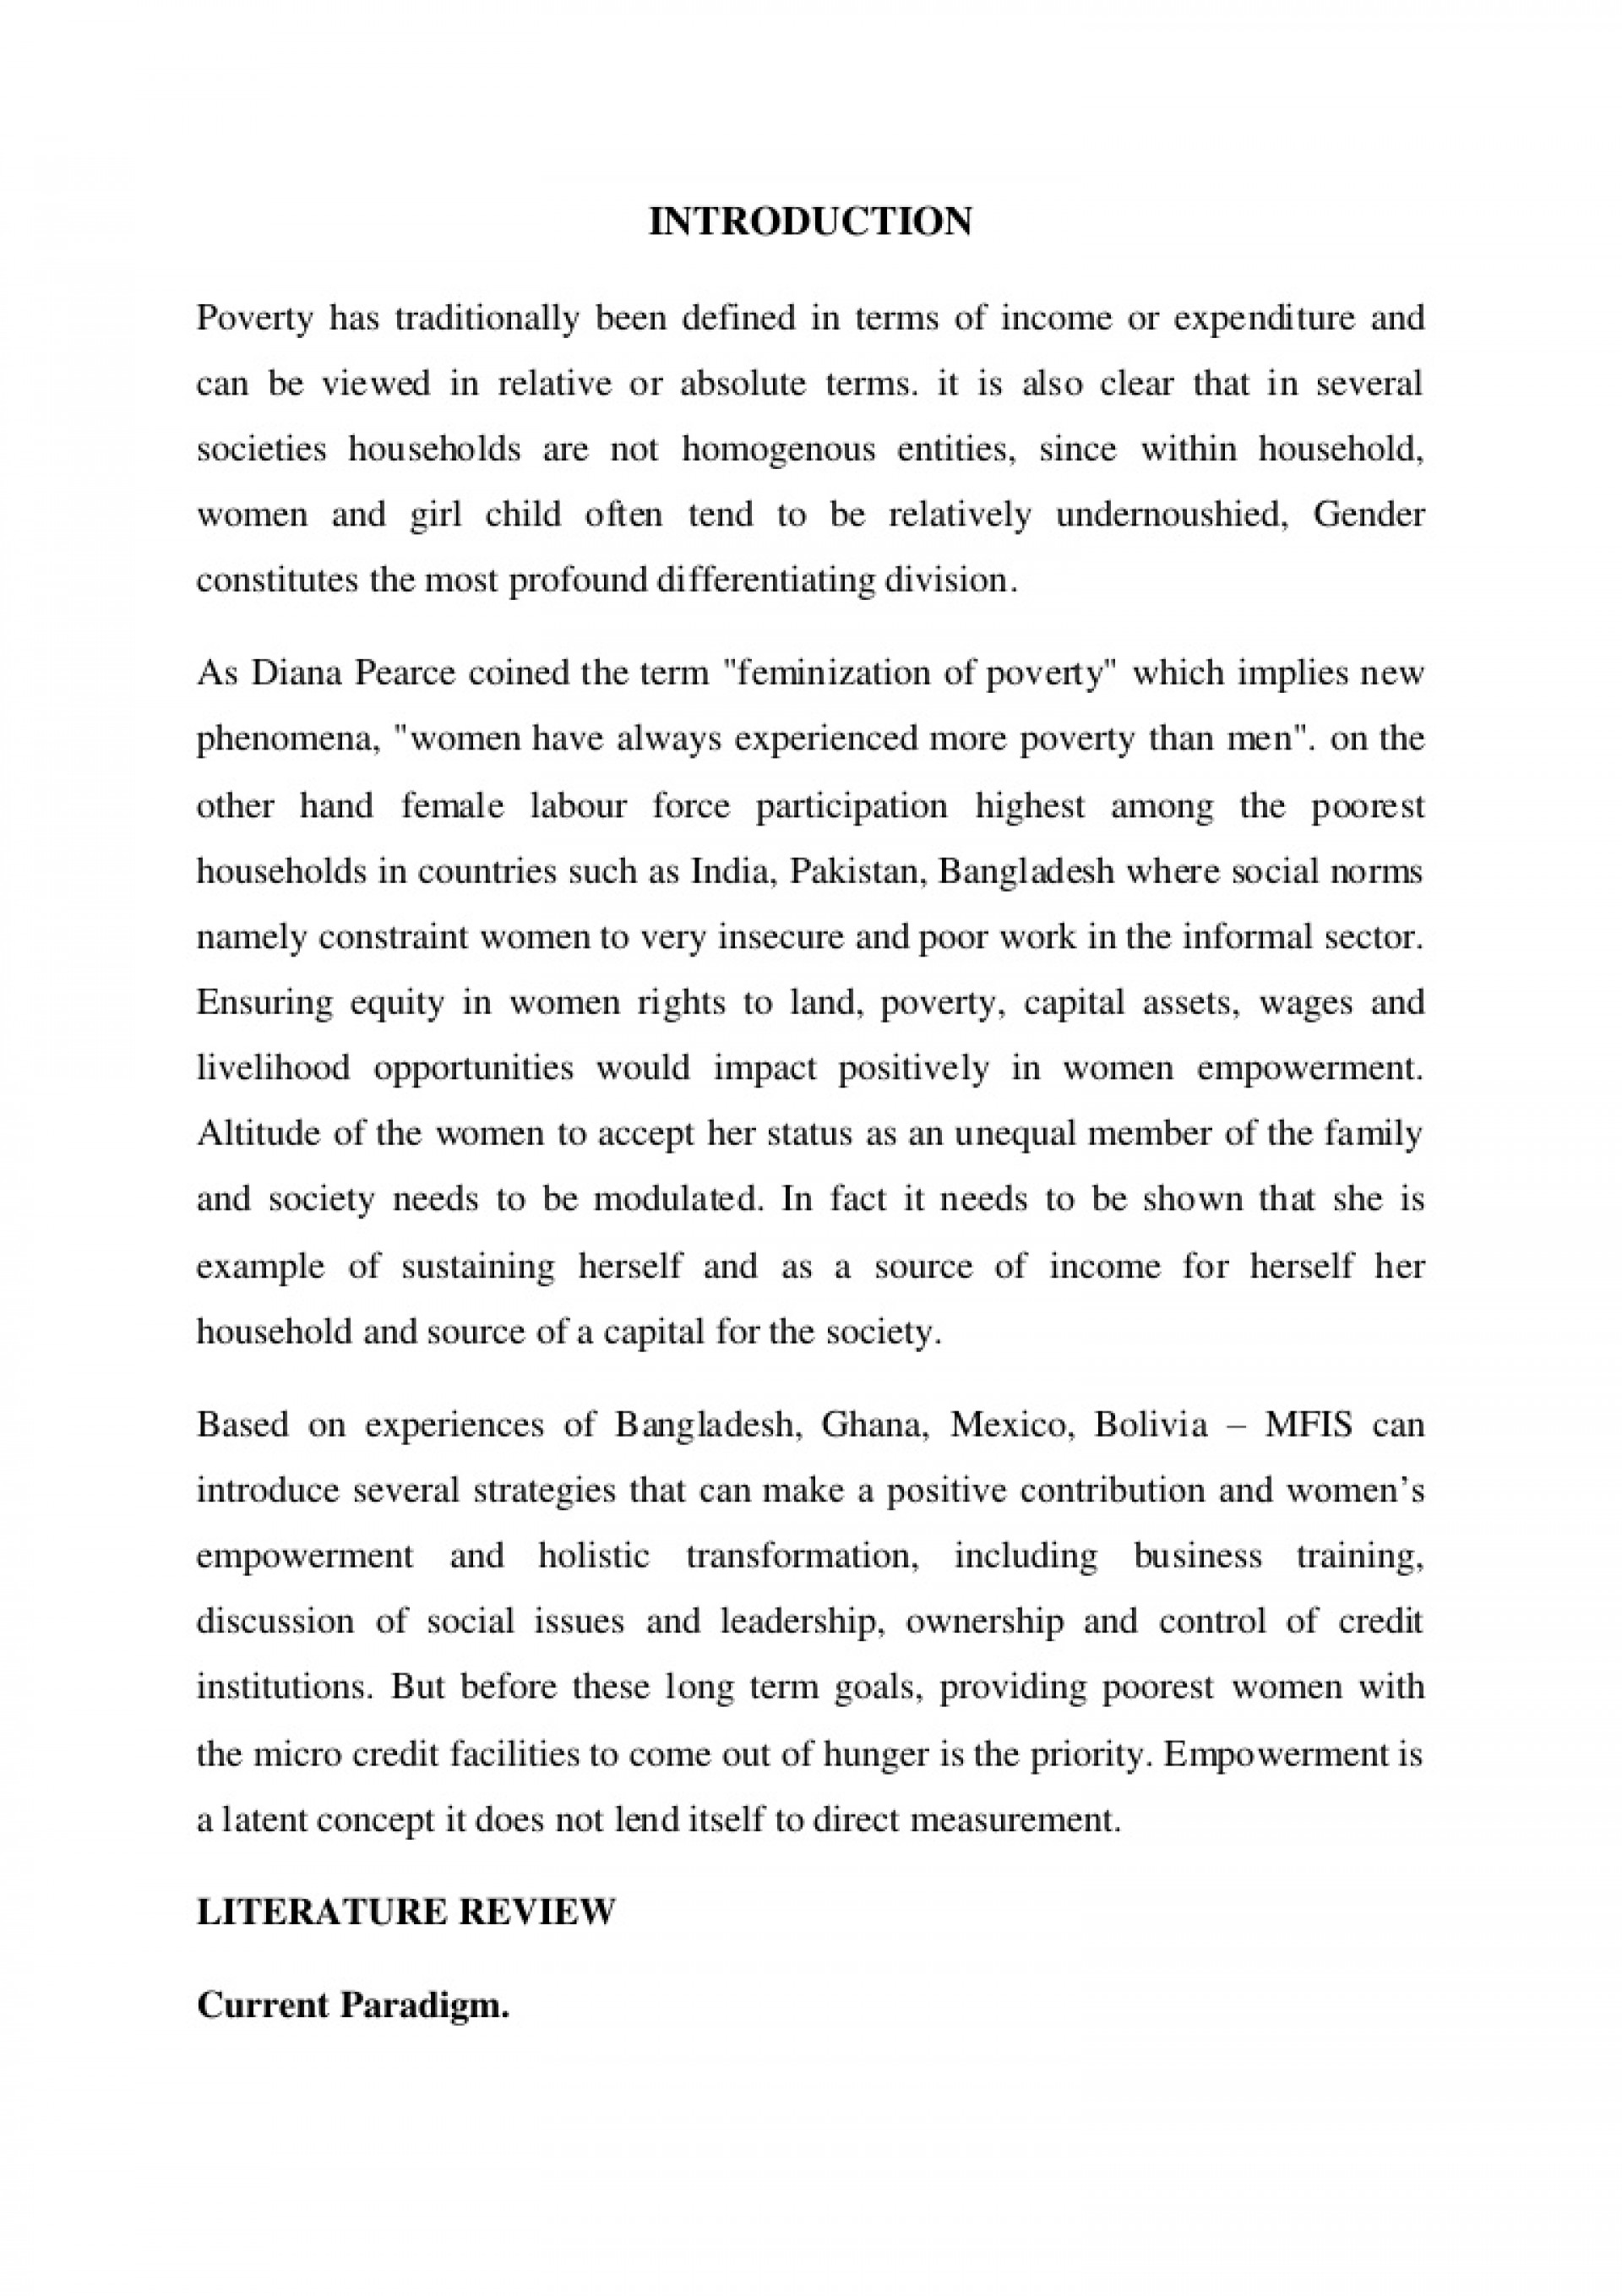 001 Poverty Has Traditionally Been Defined In Terms Of Income Or Expenditure And Can Viewed Relative Absolute Prepared By Naresh Sehdev Phpapp01 Thumbnail Exceptional Women Empowerment Essay Pdf Gender Equality Women's 1920